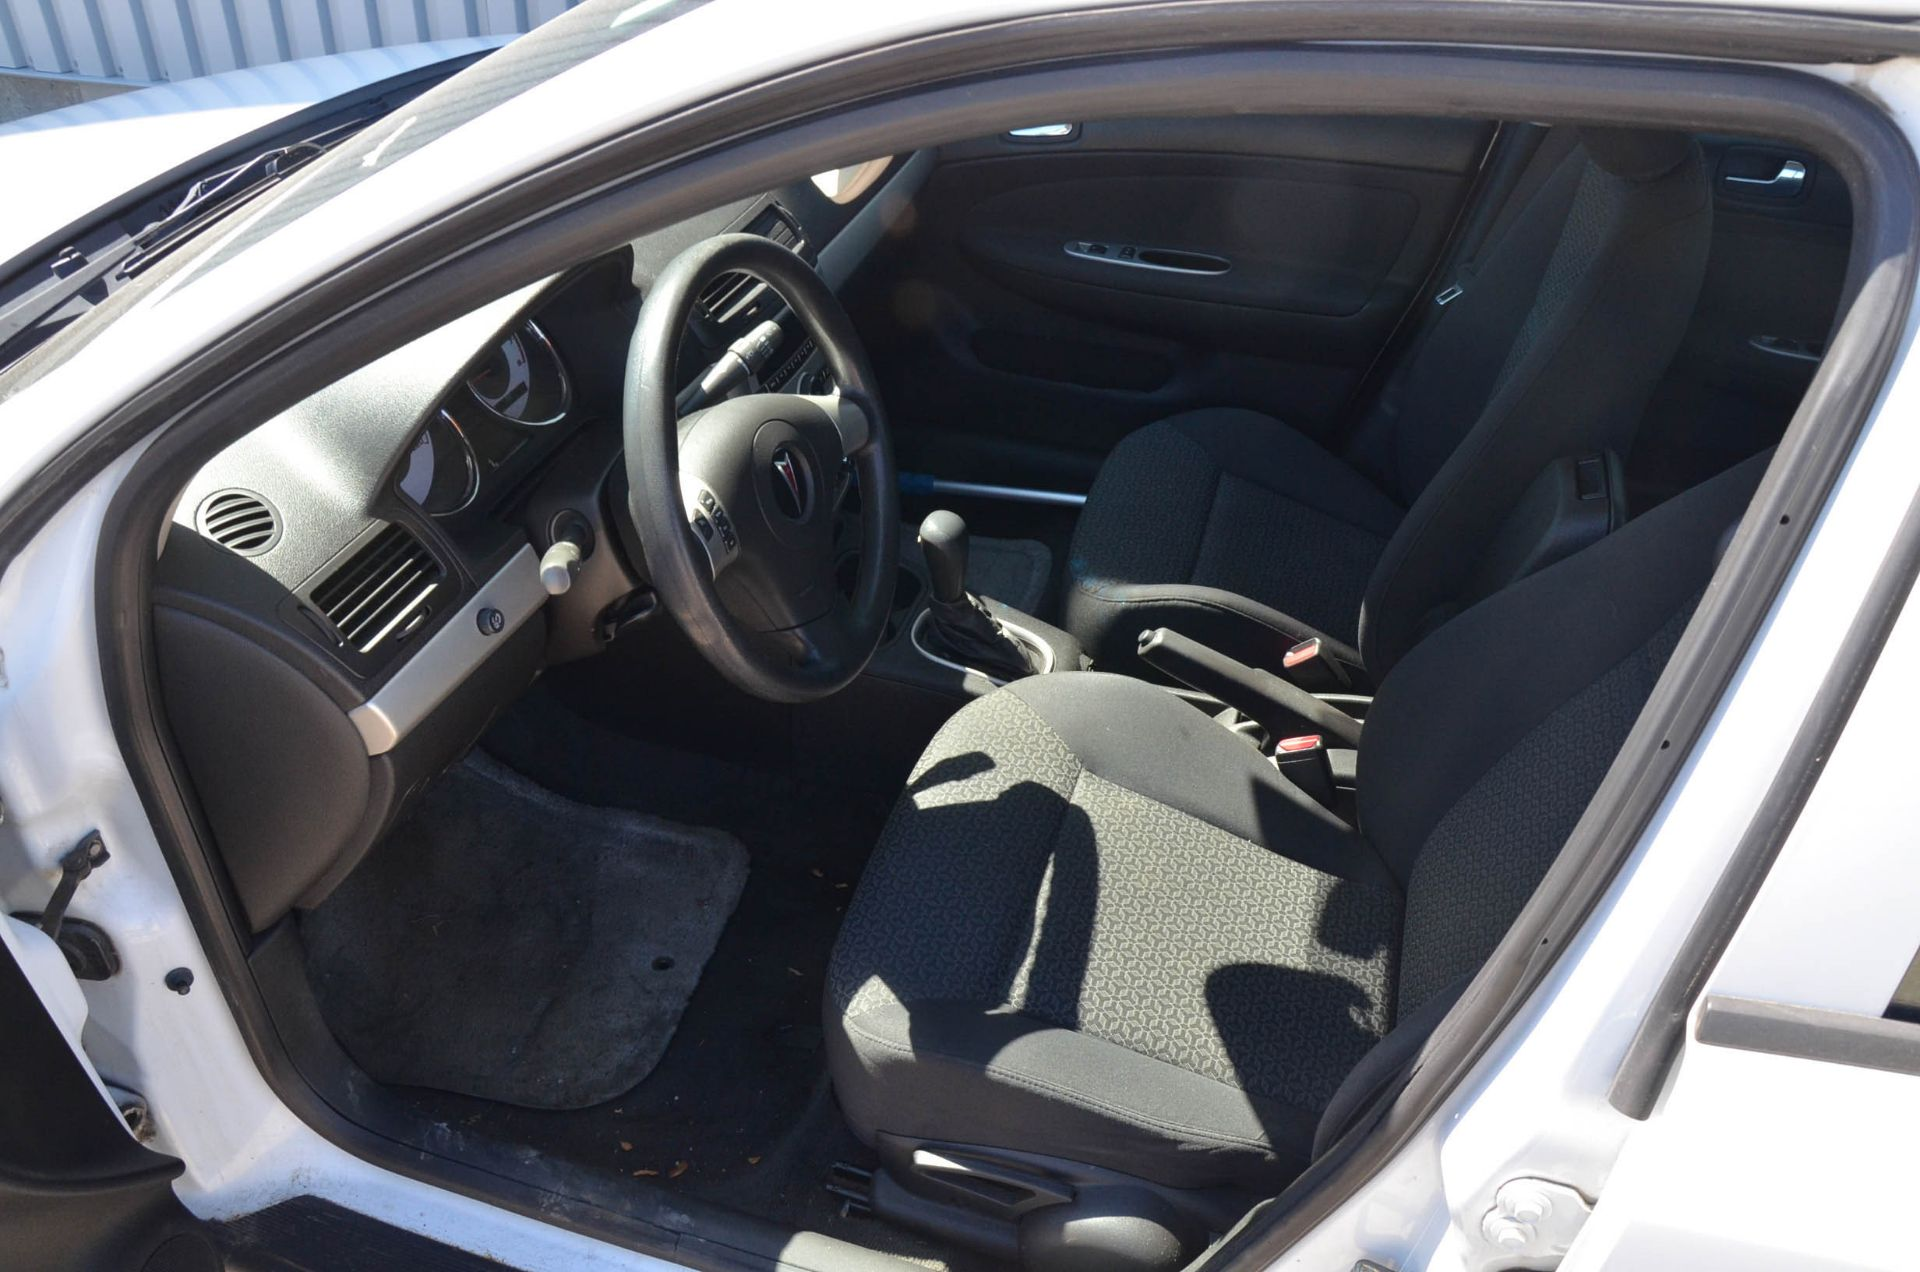 PONTIAC (2008) G5 4-DOOR SEDAN, AUTO, APPROX. 192,000 KM (RECORDED ON METER AT THE TIME OF LISTING), - Image 6 of 9